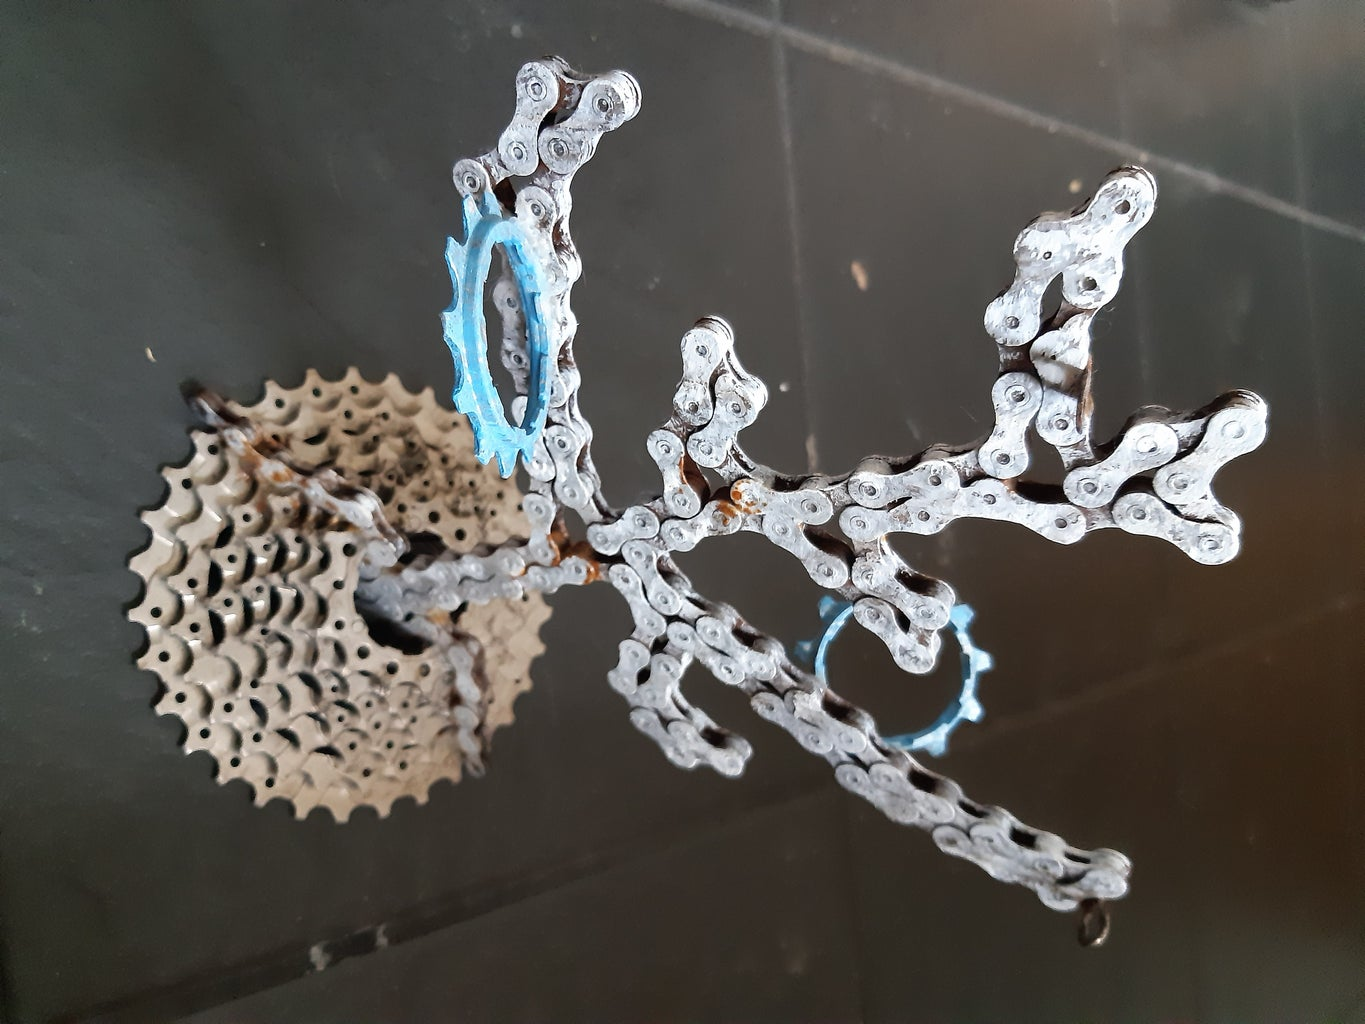 Upcycled Bicycle Chain Key Holder